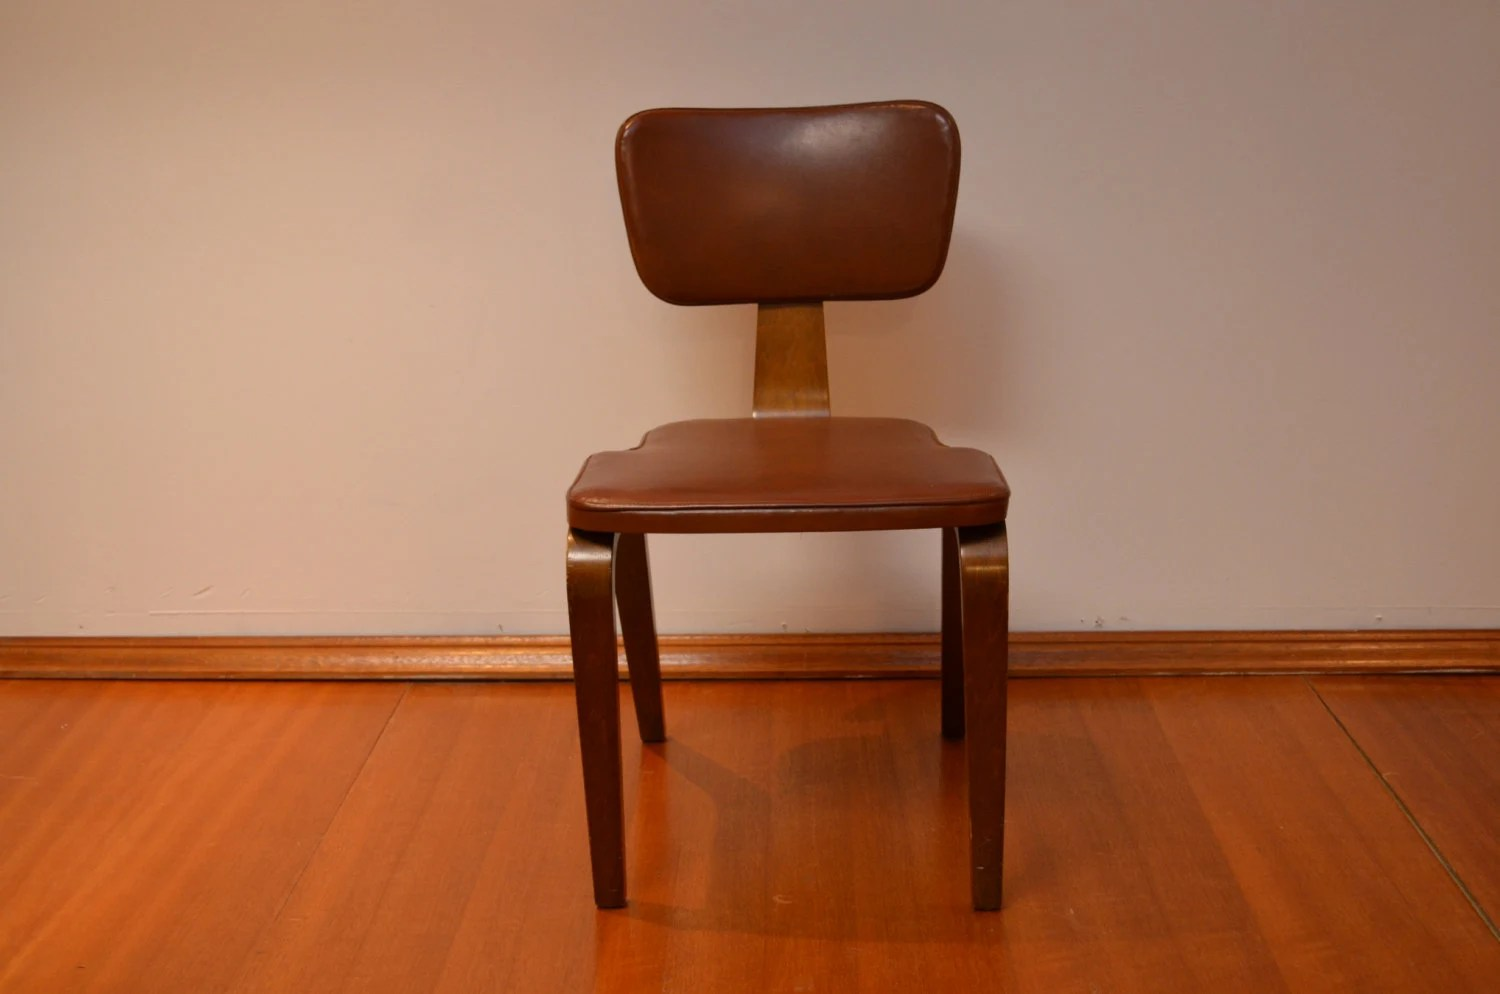 Bent Plywood Chair Vintage Bent Plywood Thonet Chair